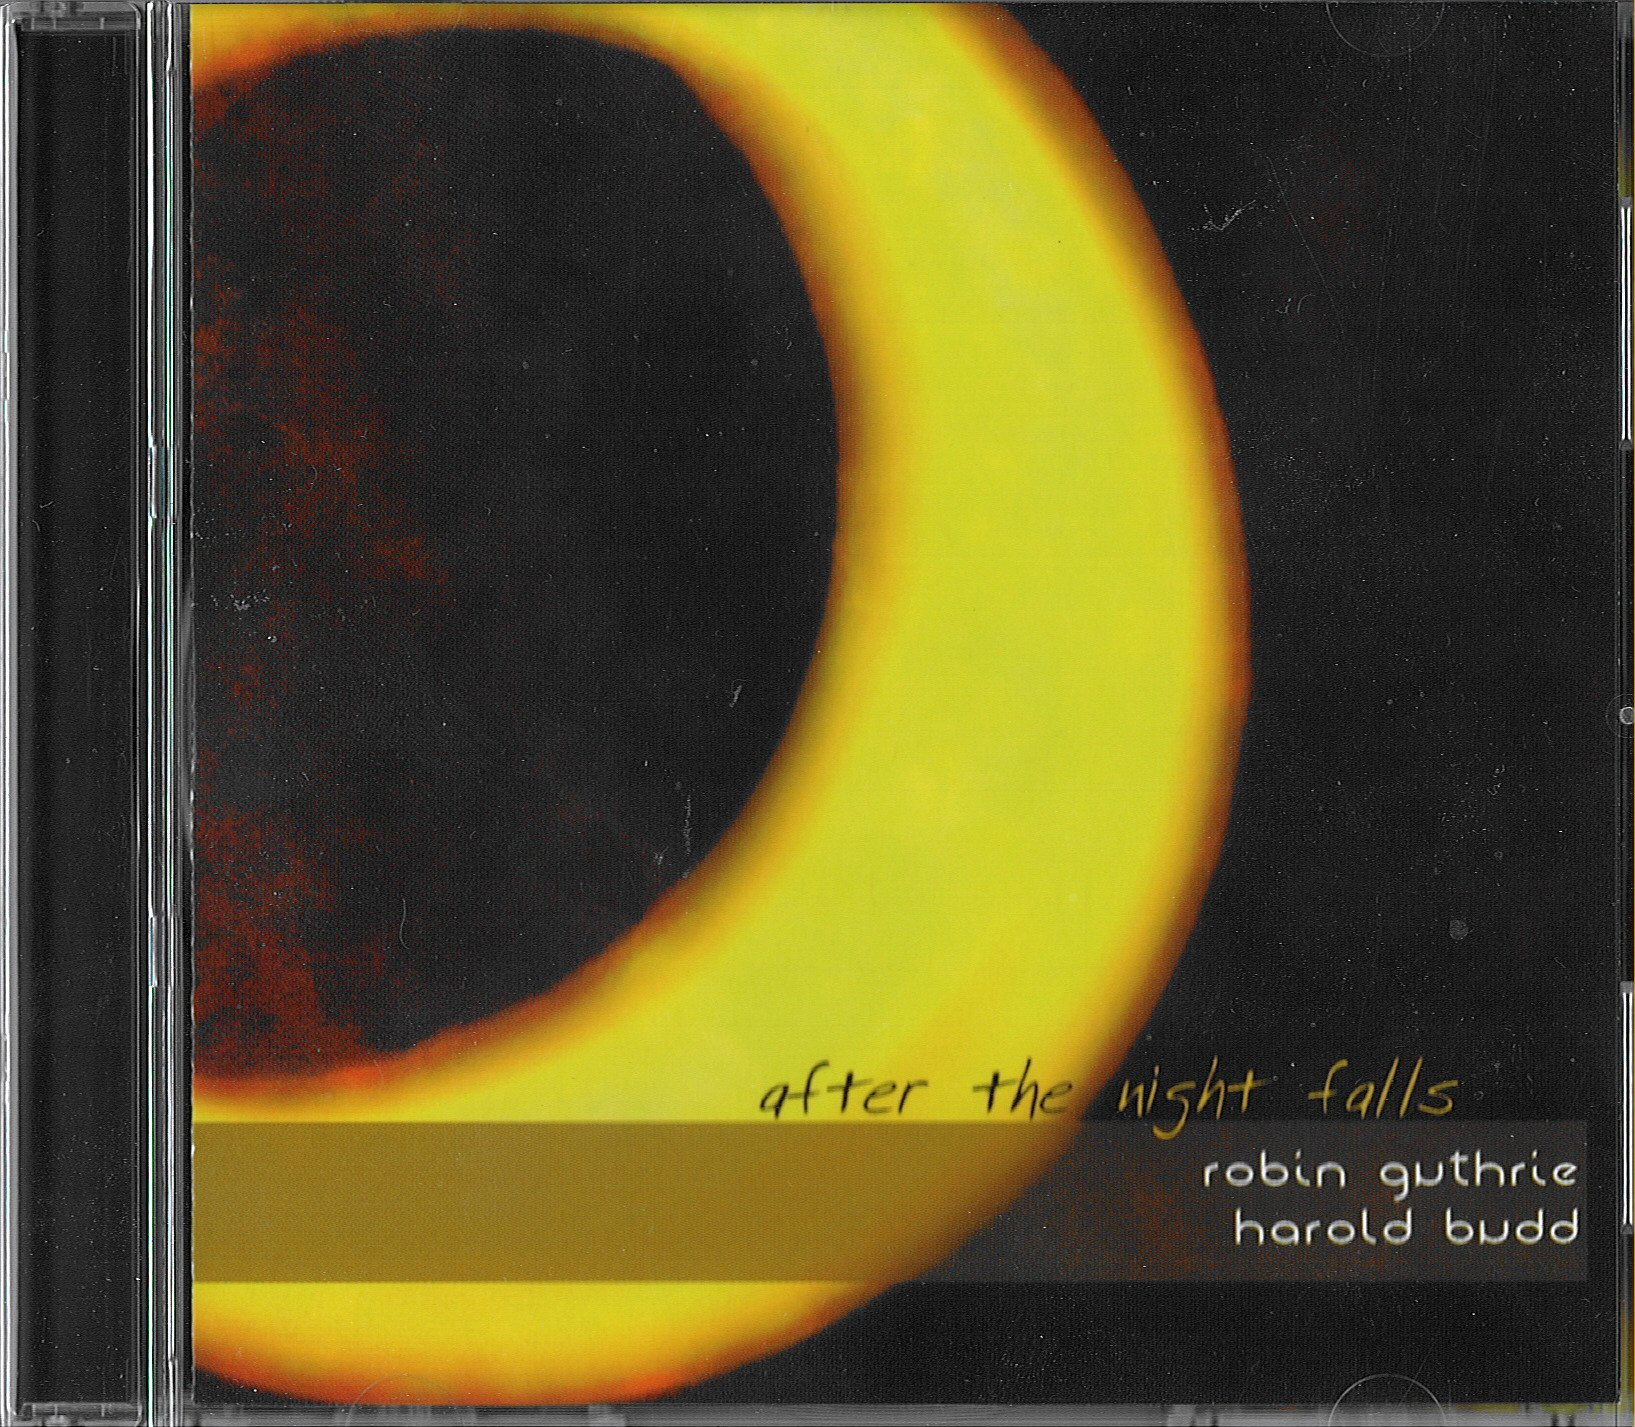 Harold Budd - After the night falls